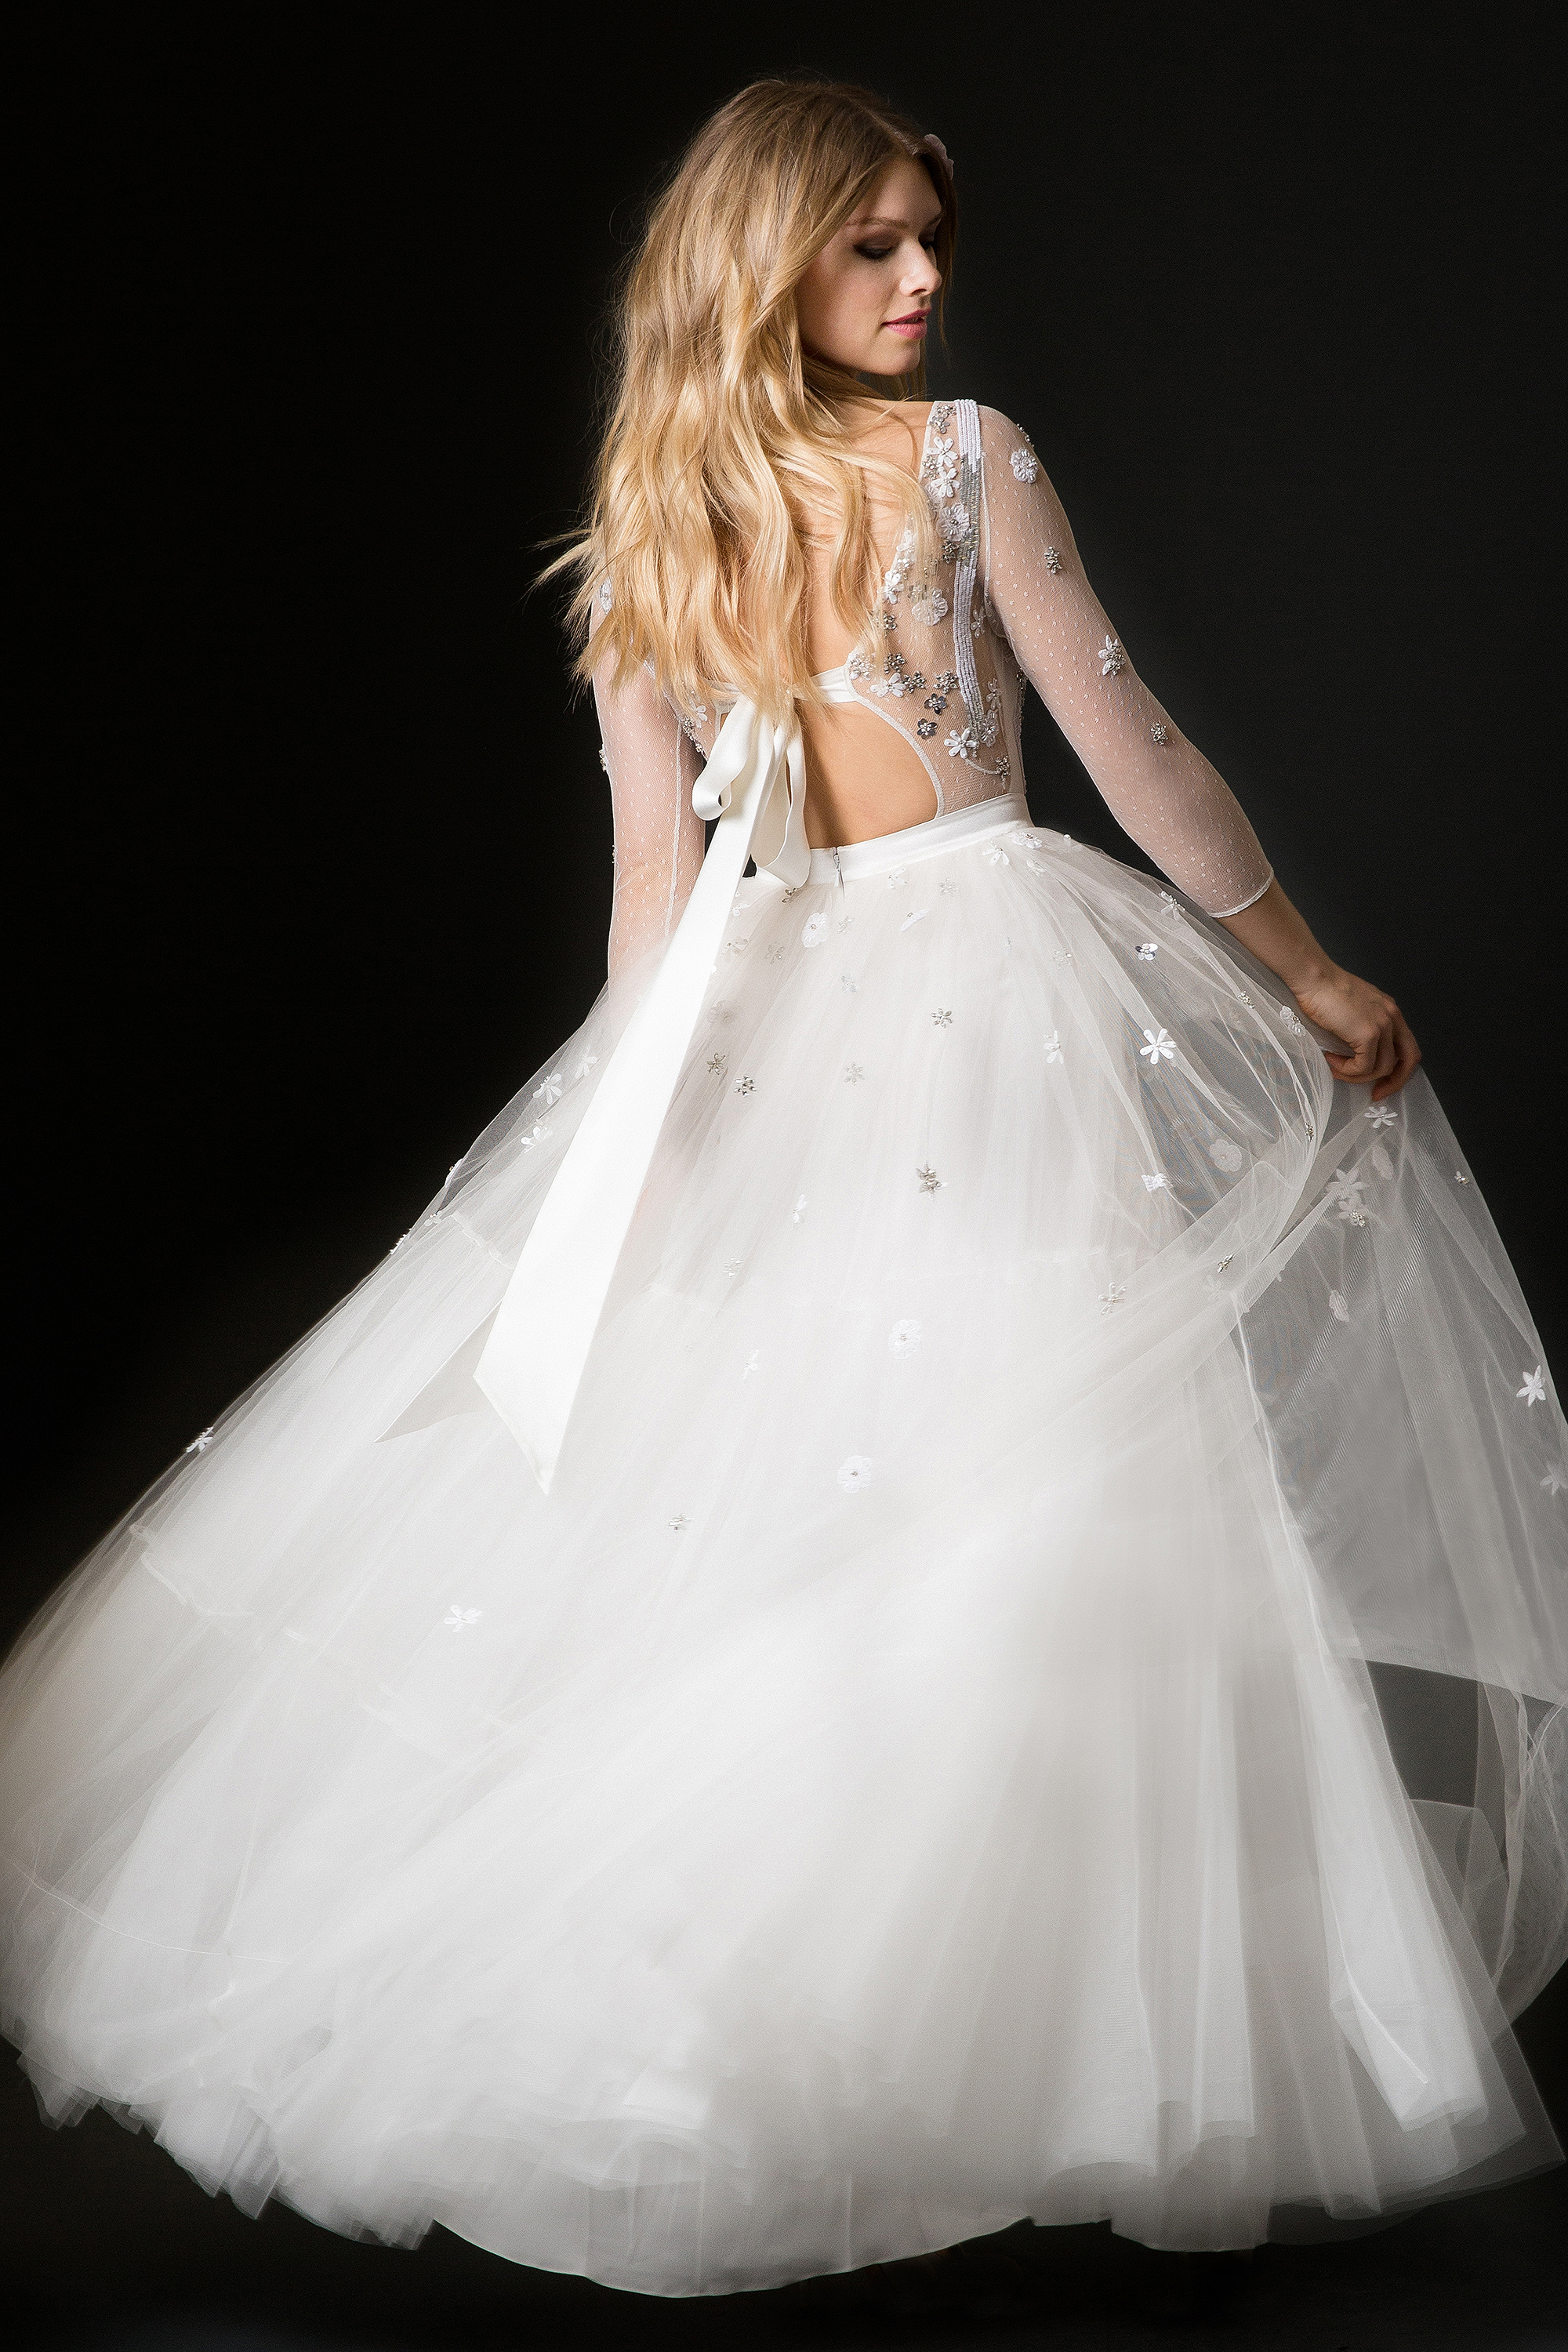 temperley wedding dress spring 2019 ballgown with three-quarter length sleeves and open back with tie